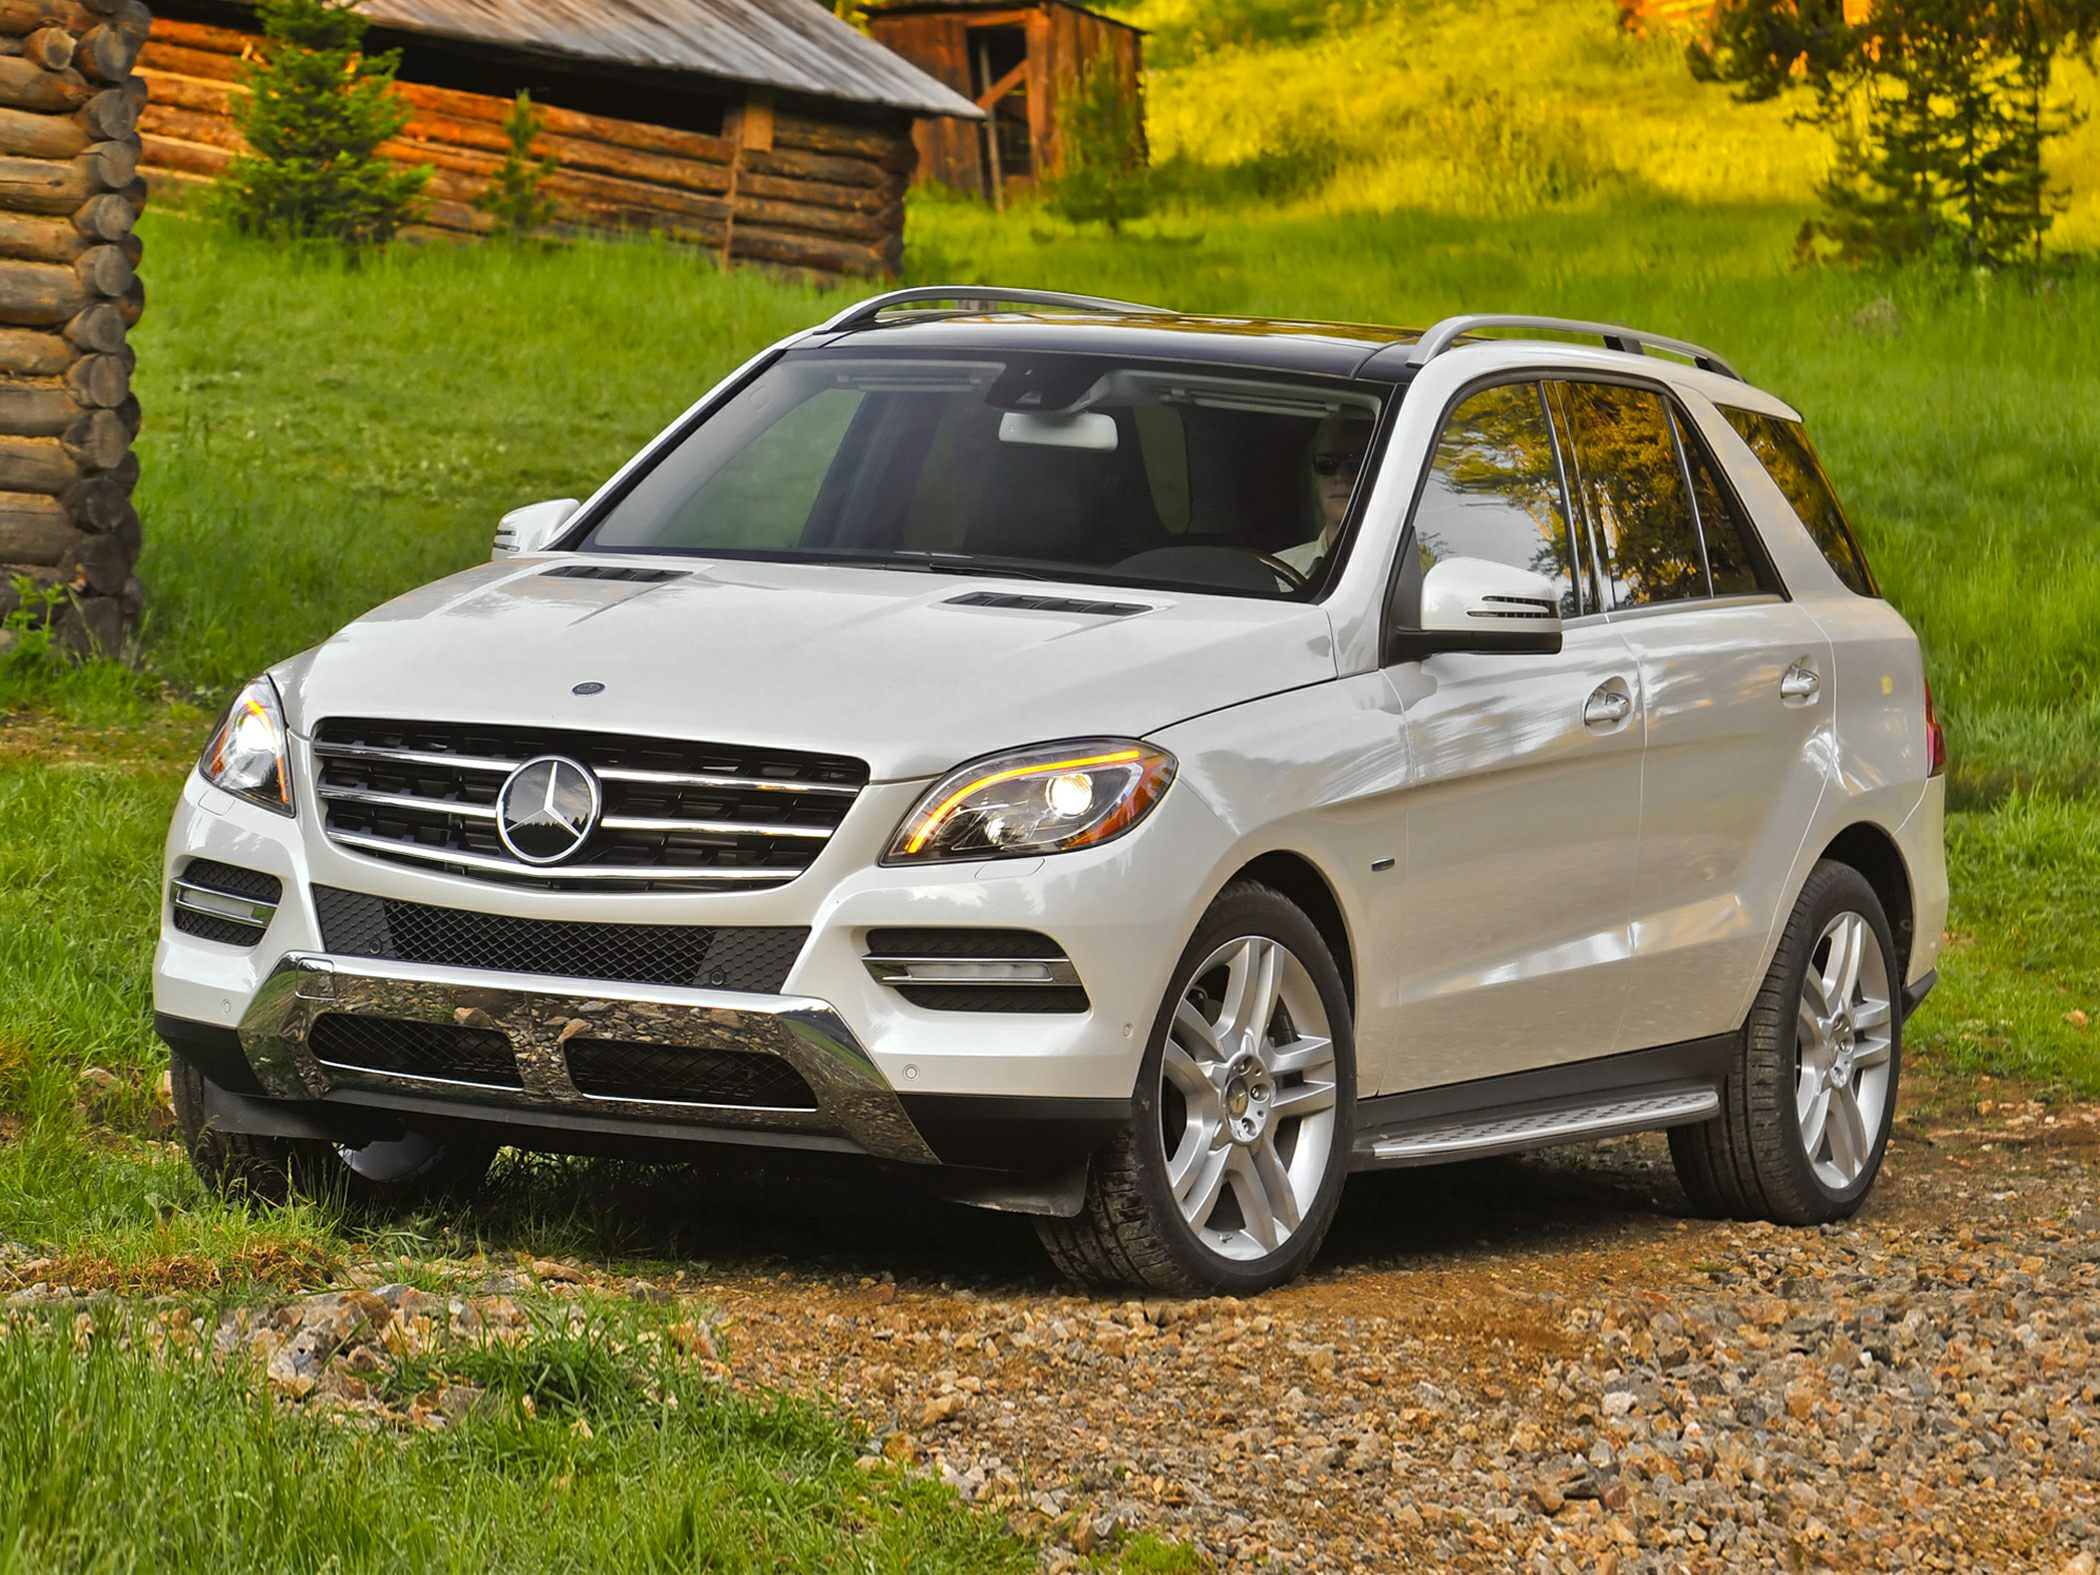 2014 mercedes-benz ml350 bluetec